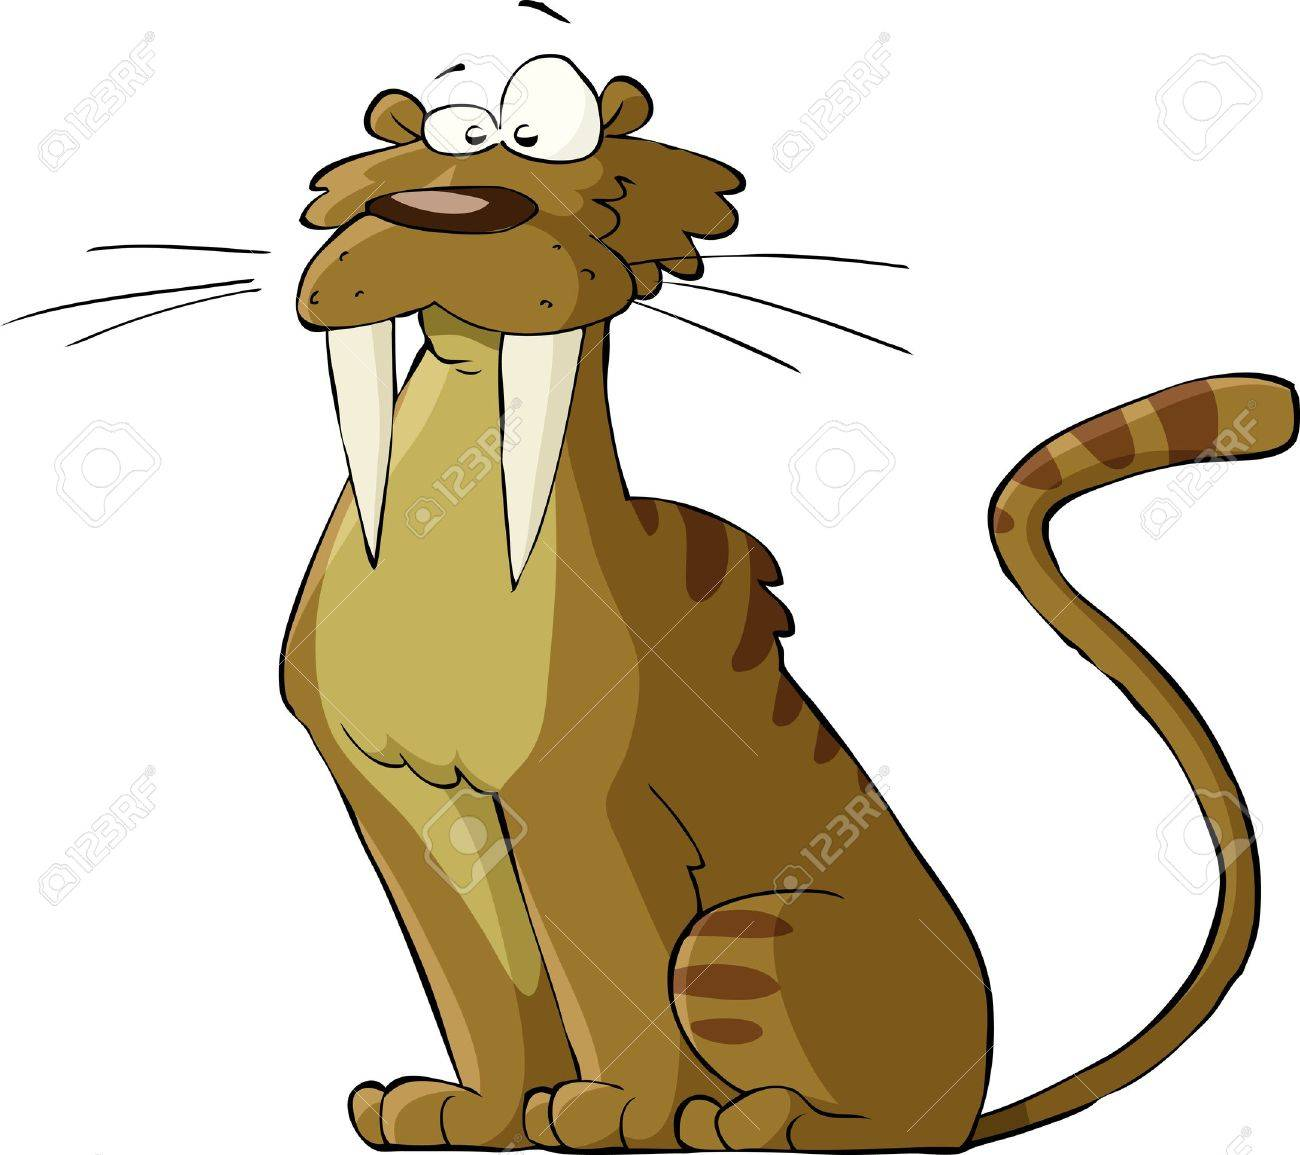 Saber tooth cat on a white background, vector Stock Vector - 11928846